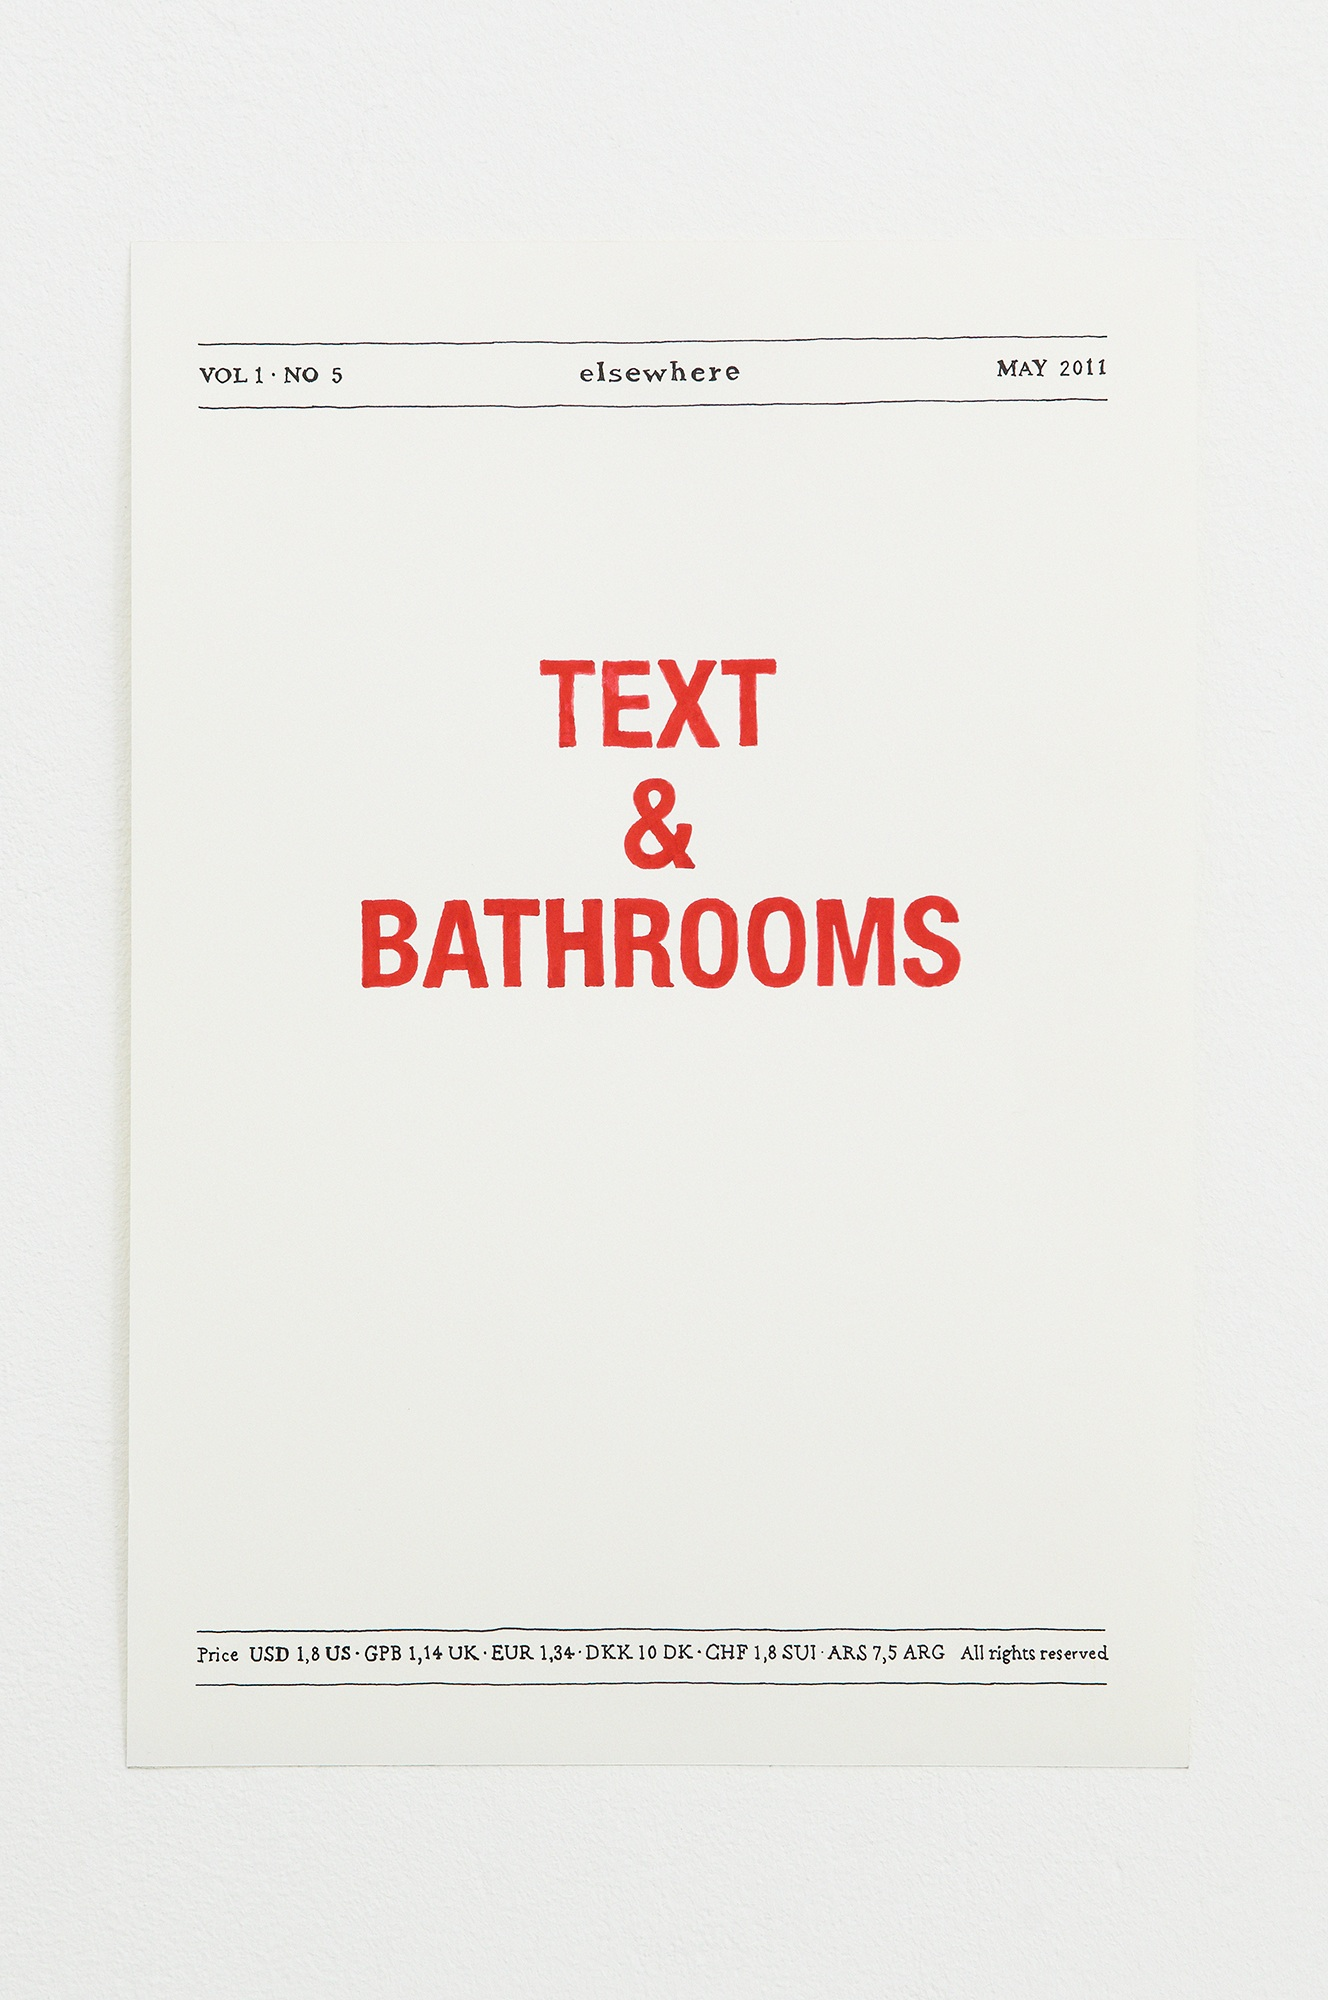 Text & bathrooms, tusch på papir, valuta kurser, 2011